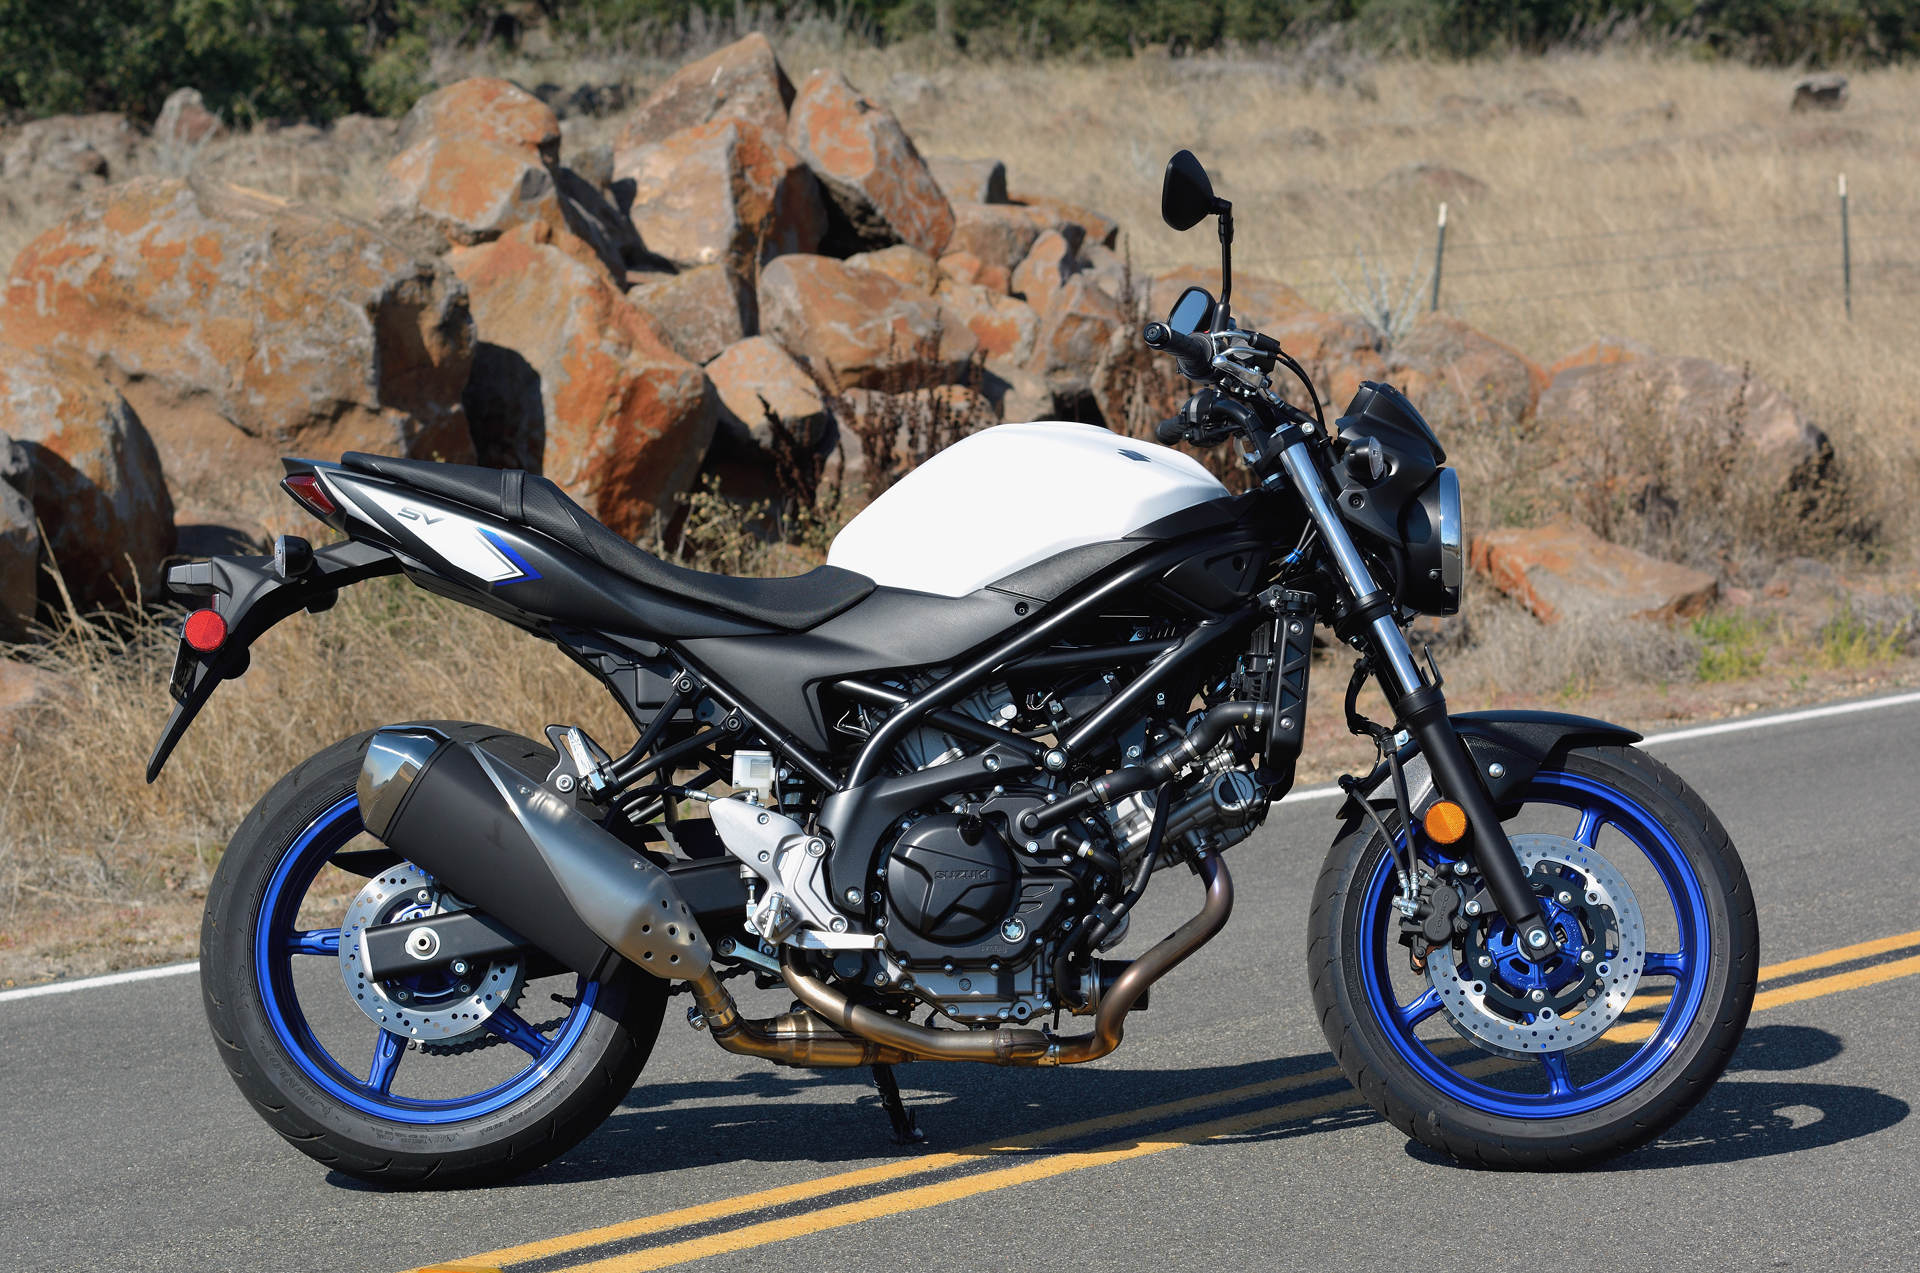 2017 suzuki sv650 md ride review  motorcycledaily